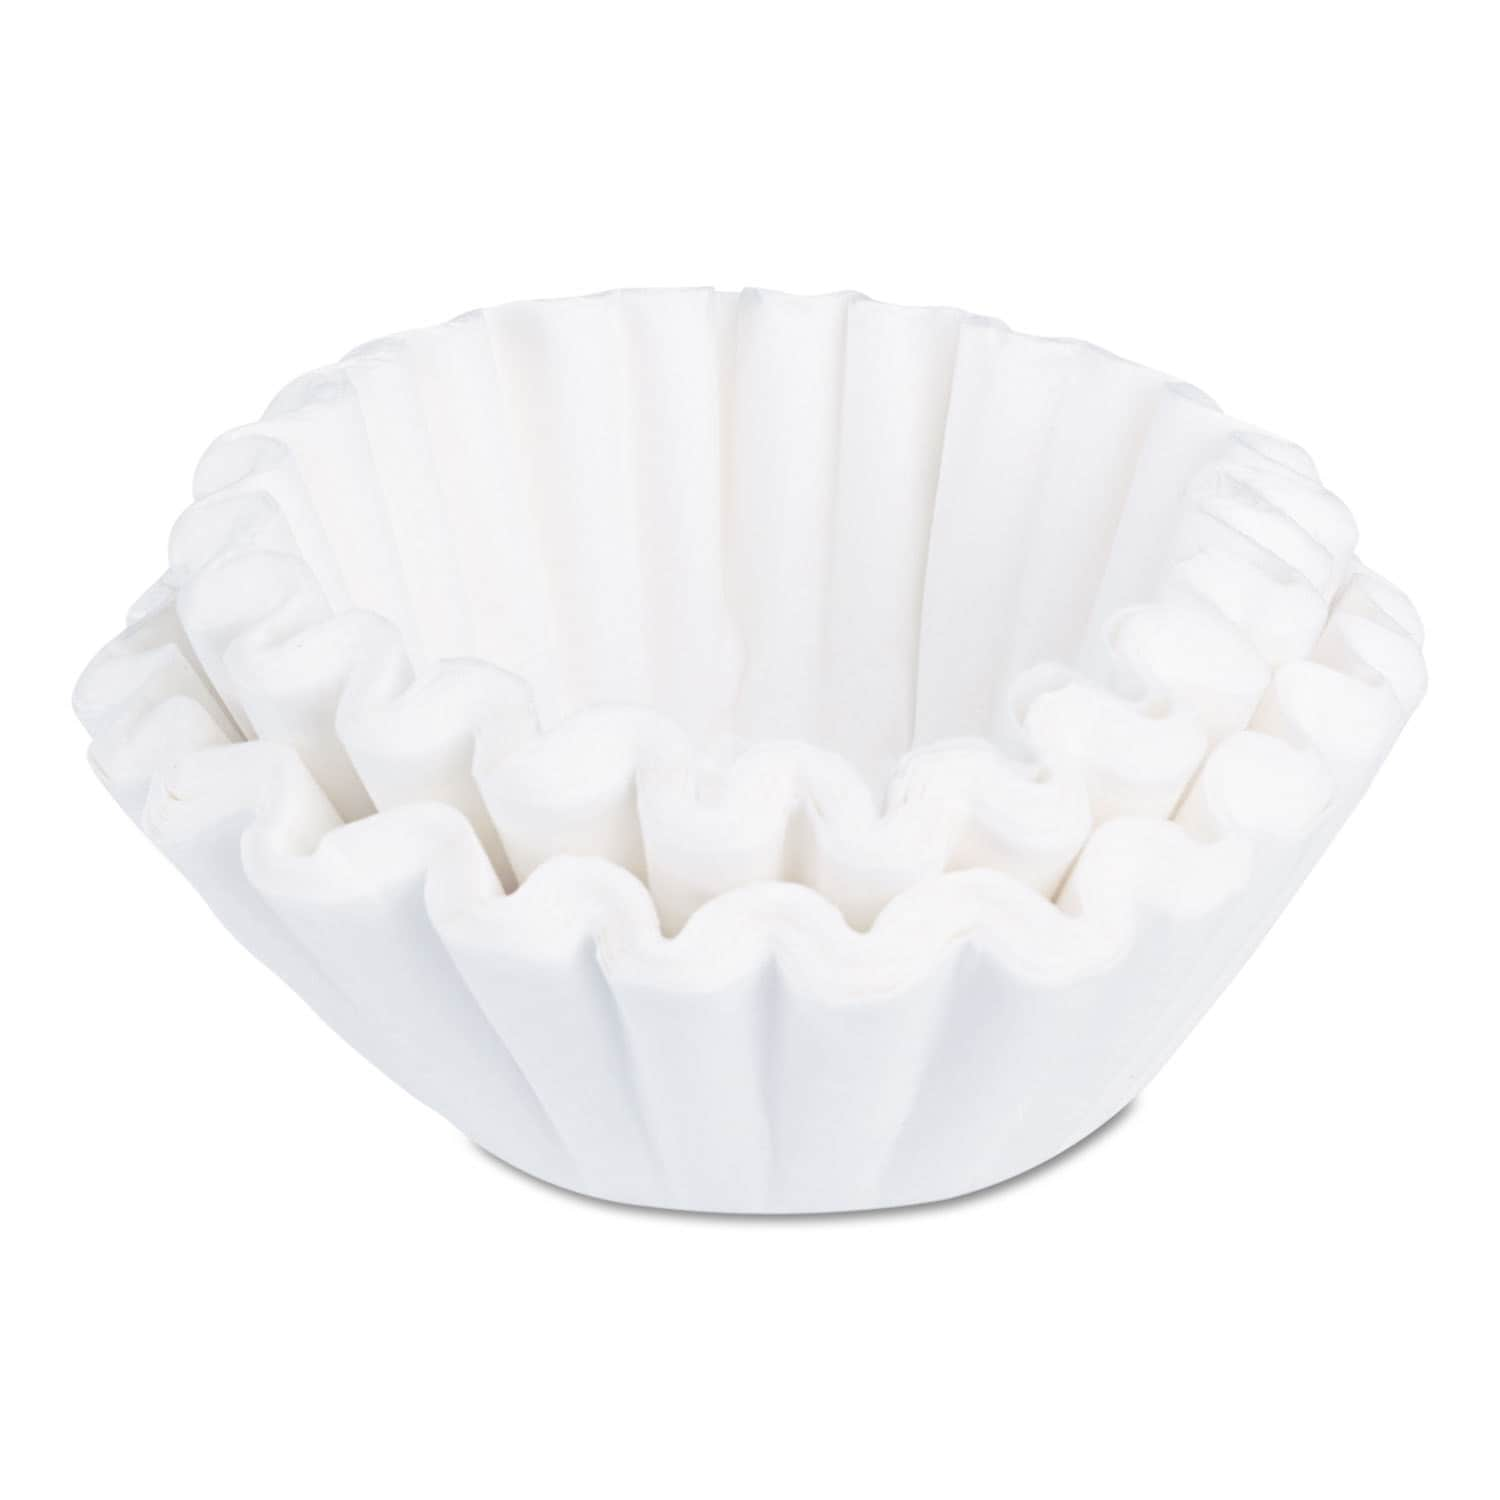 BUNN Commercial Coffee Filters 3-Gallon Urn Style 252/Car...